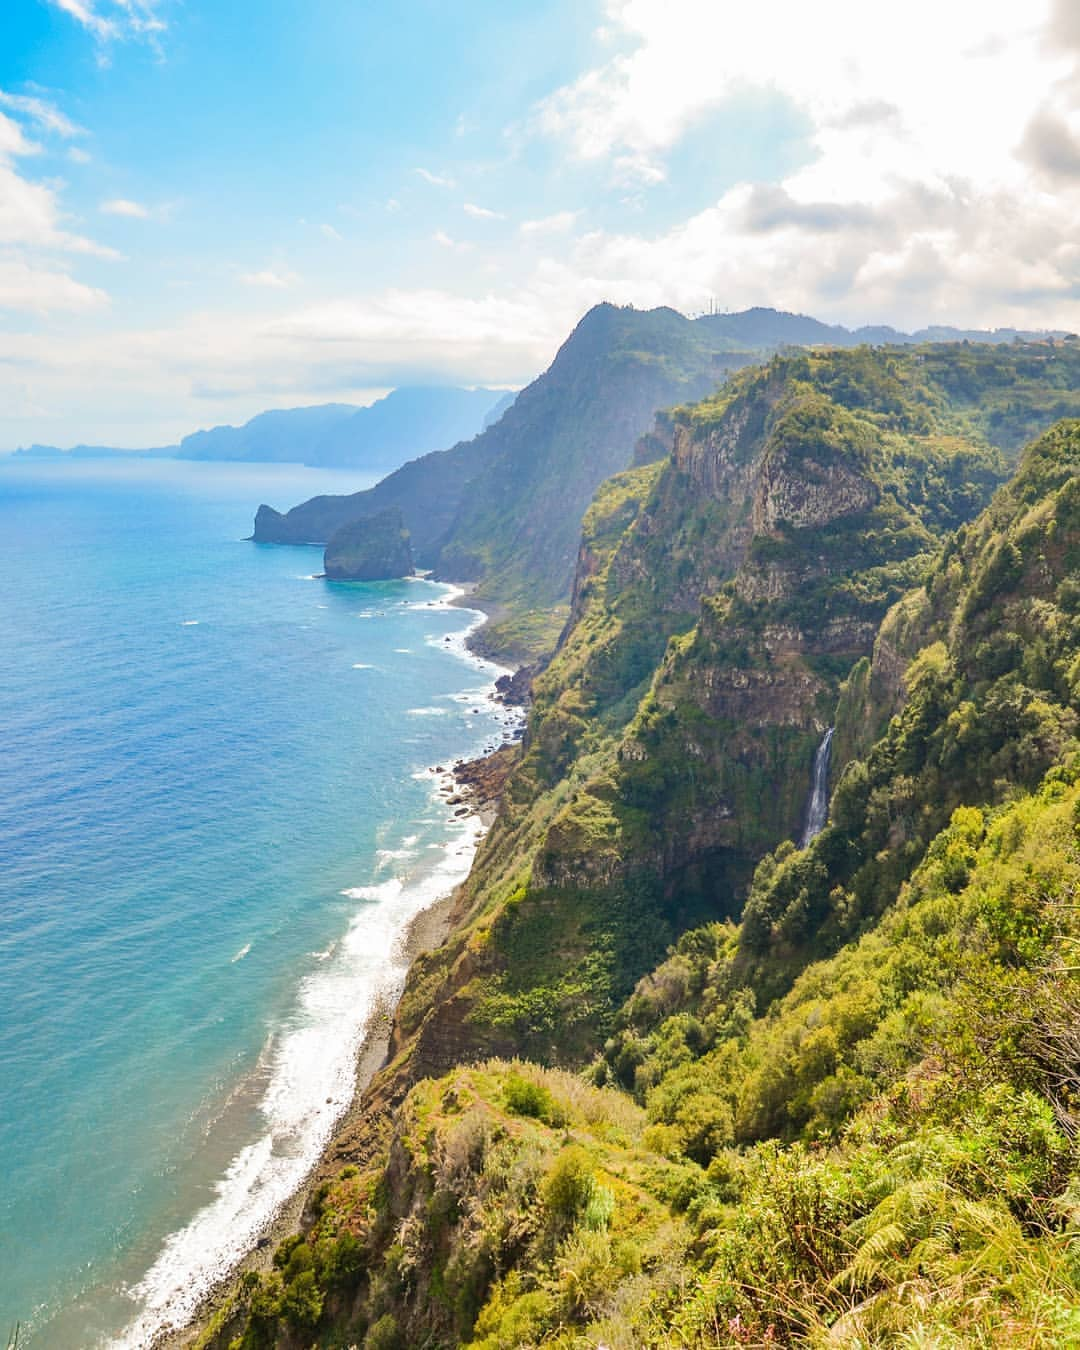 COVID-19: Madeira First Region with a tourist destination certification process